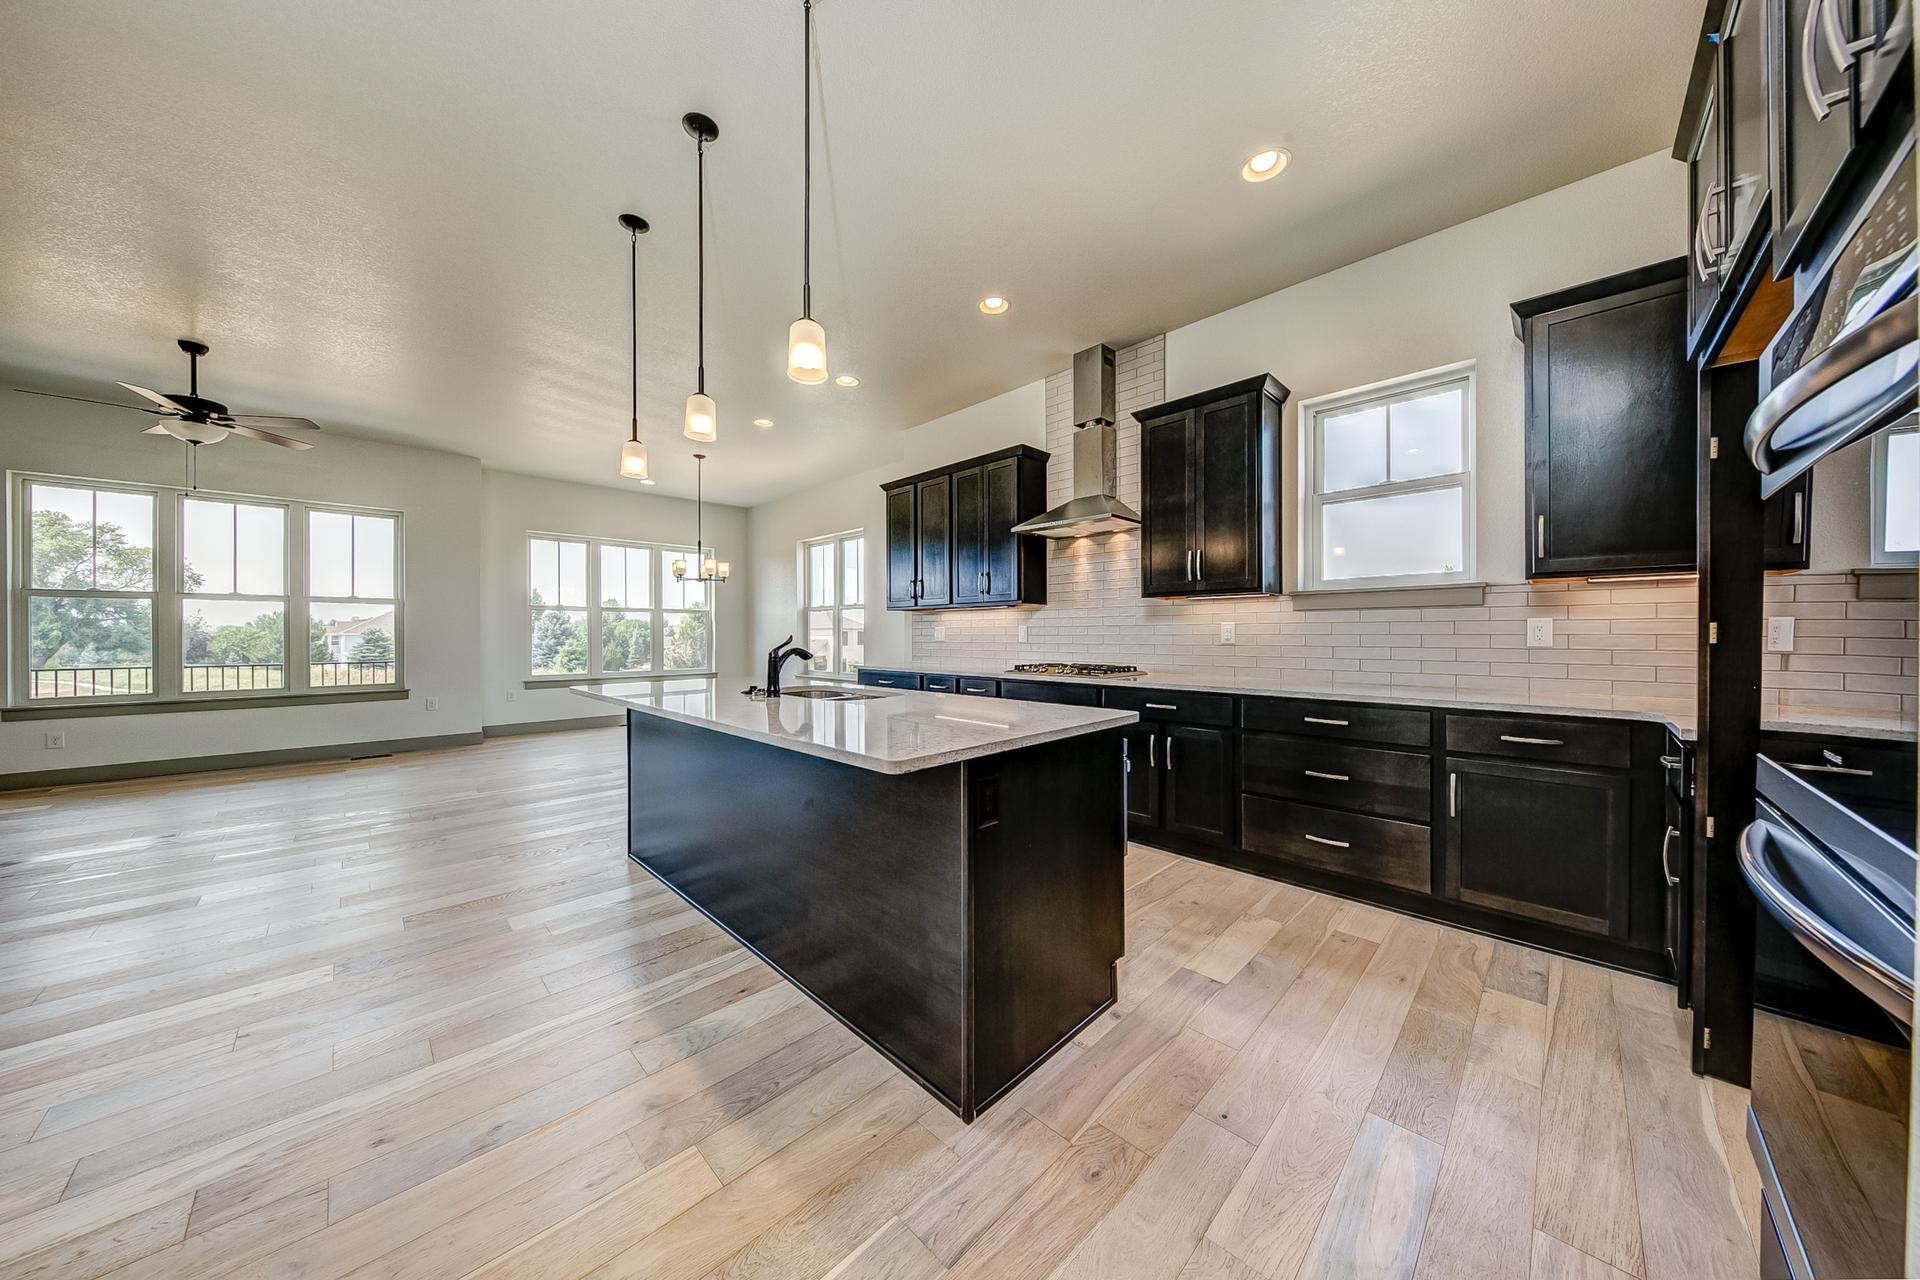 Kitchen - Not Actual Home - Finishes Will Vary . New Home in Windsor, CO